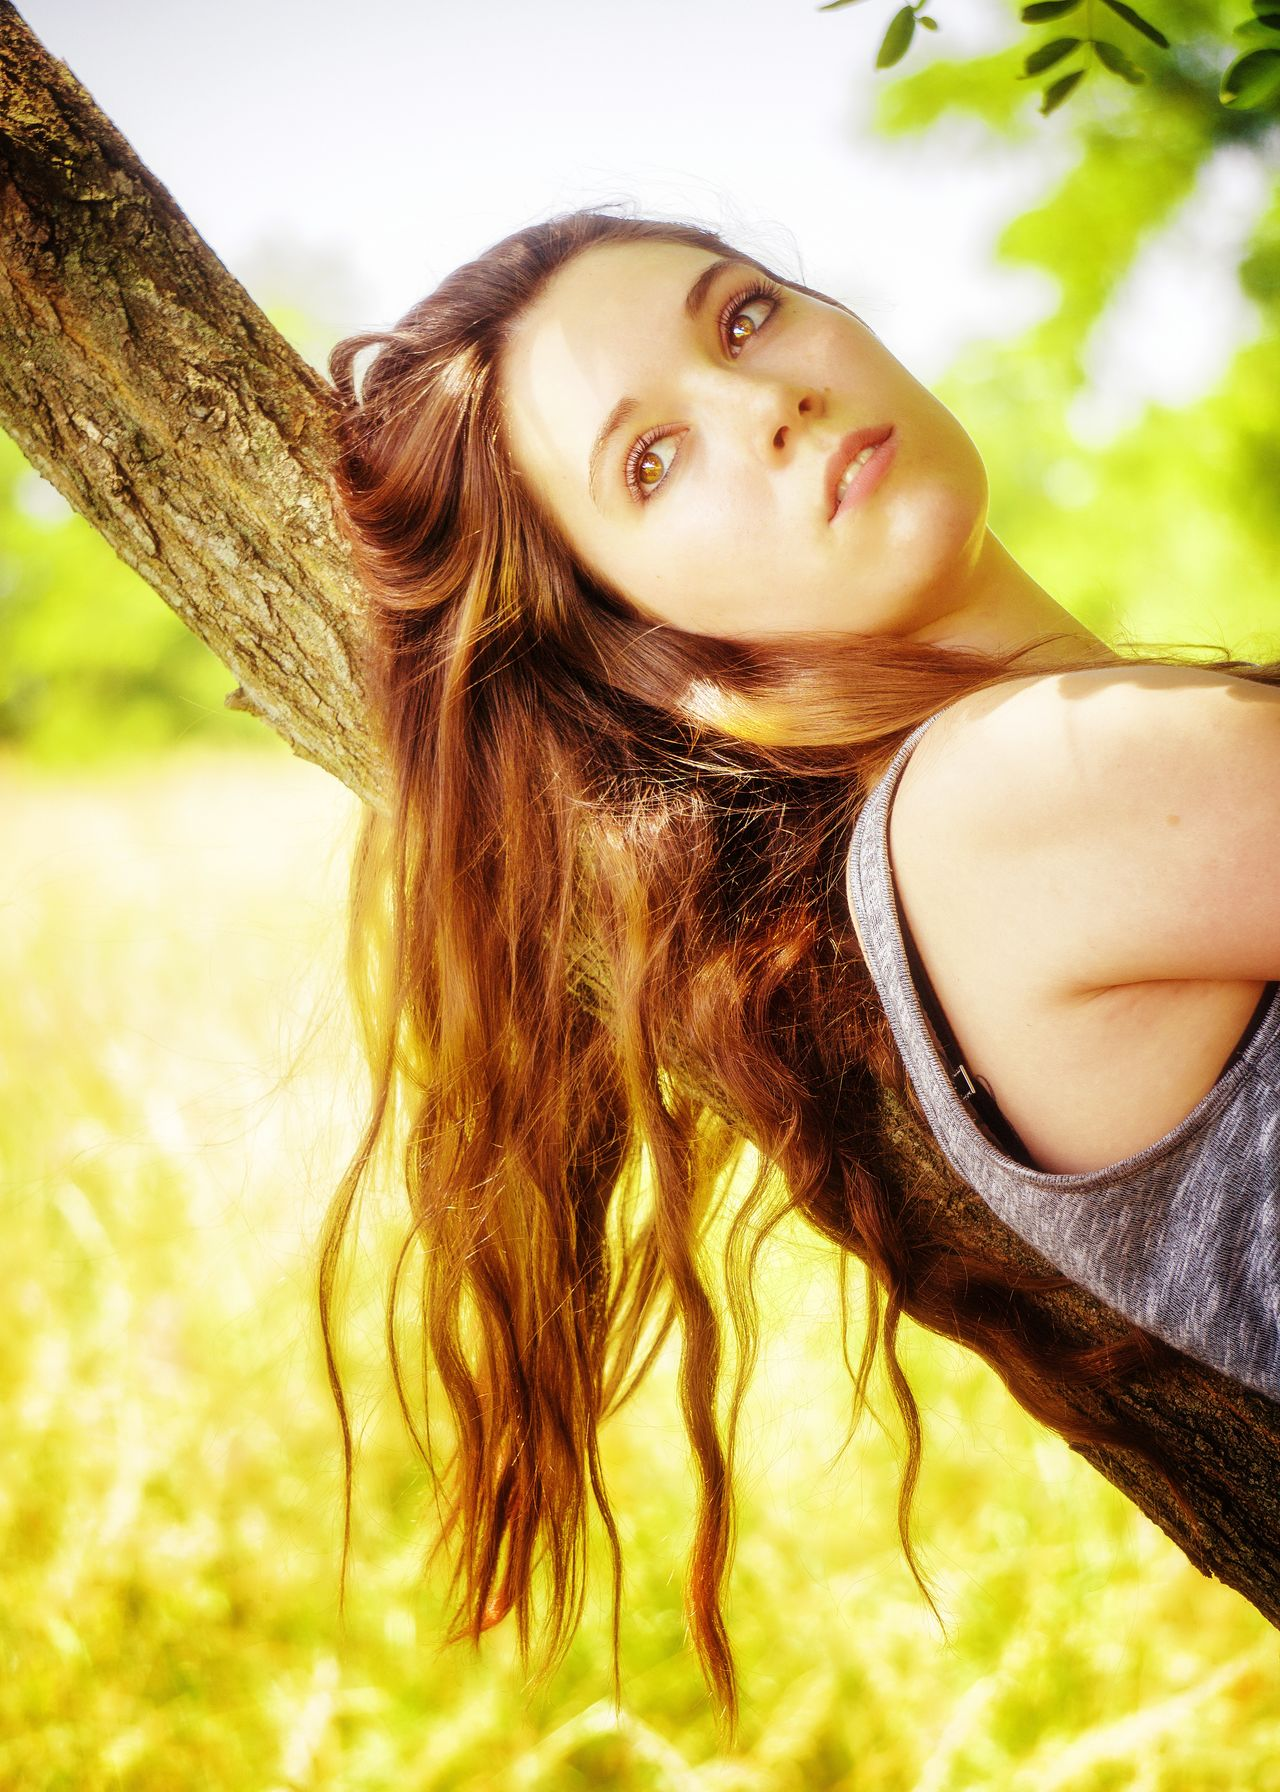 Beautée sauvage. One Person Outdoors Human Body Part Nature Only Women Young Adult One Woman Only Young Women Beauty In Nature Portrait Tree Real People Human Face Hair Hairstyle Long Hair